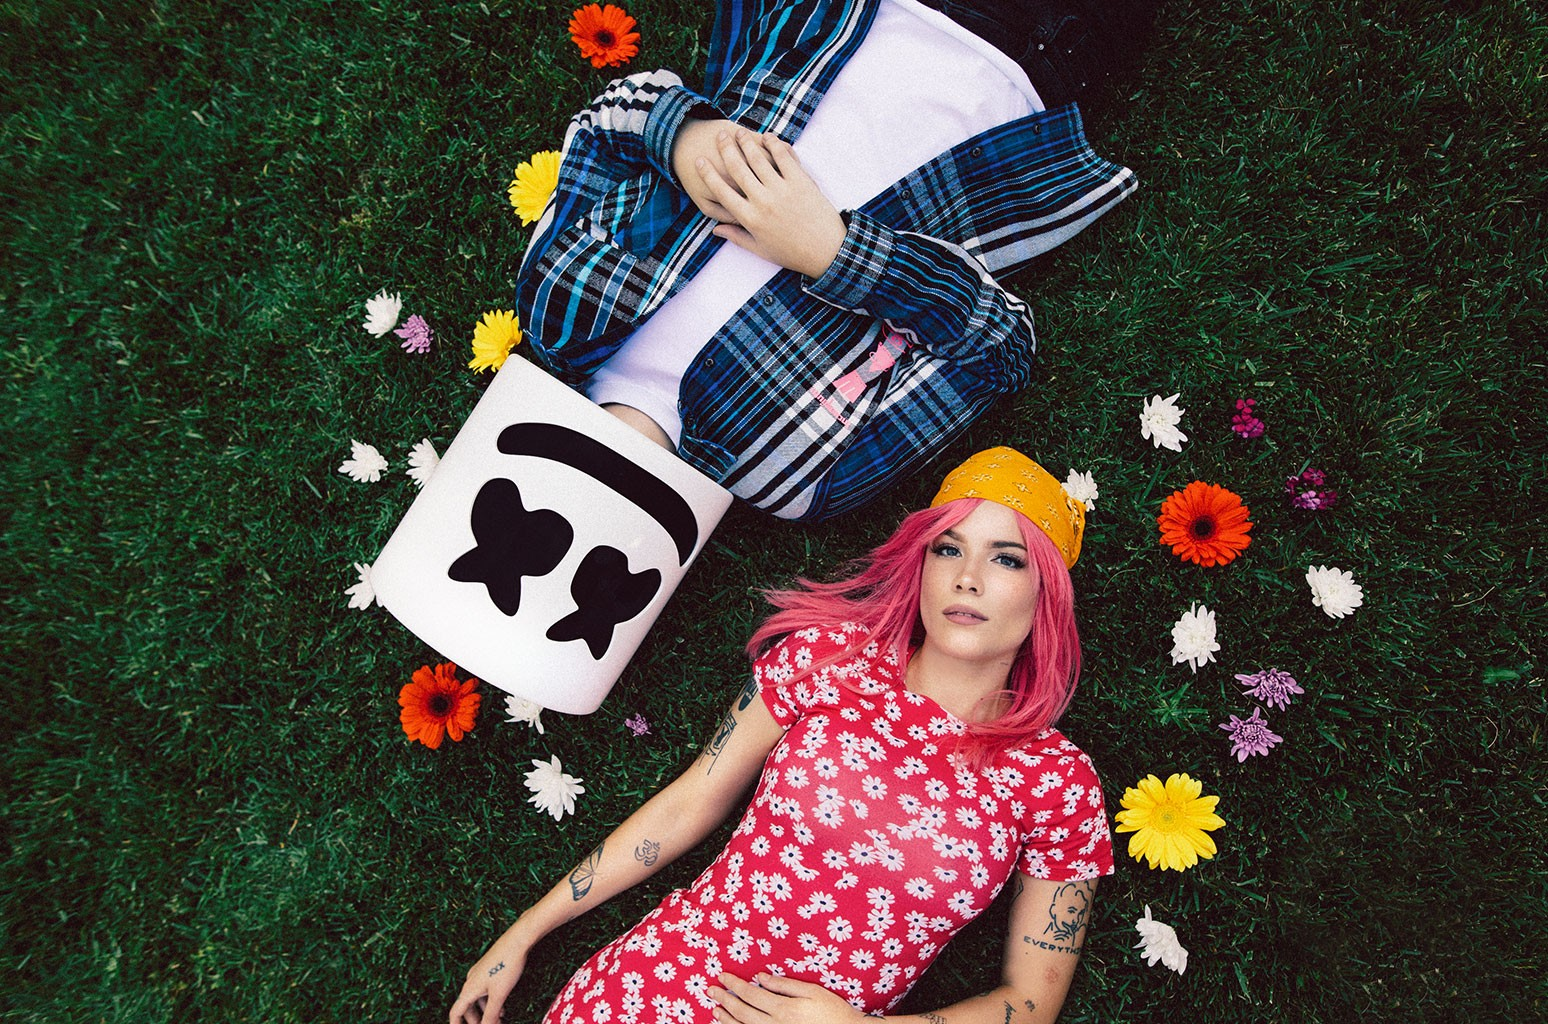 Halsey and Marshmello